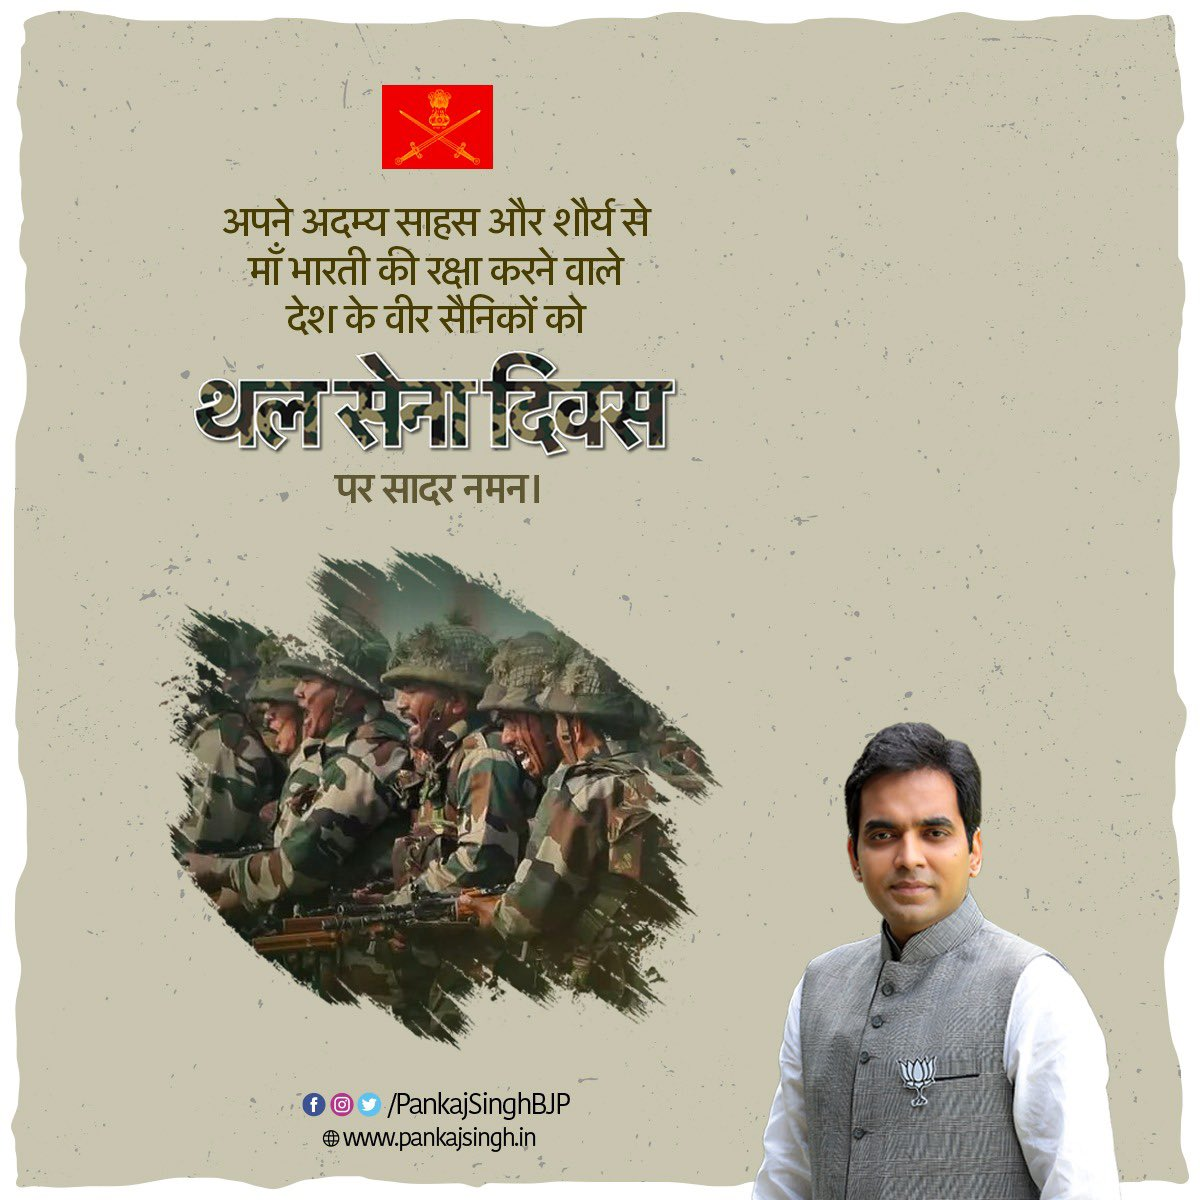 Replying to @PankajSinghBJP: #ArmyDay